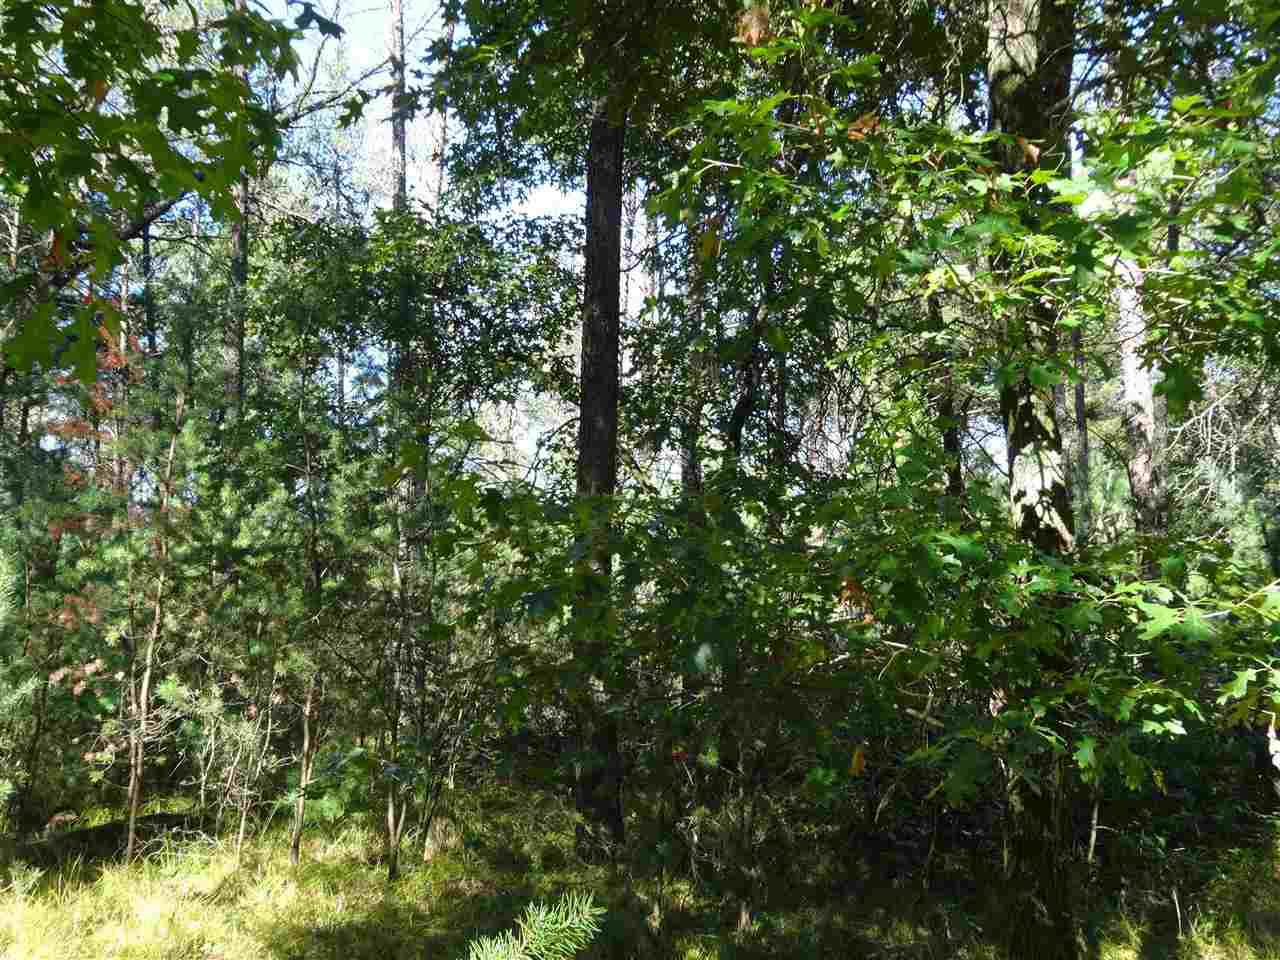 Lot in Castle Rock Estate subdivision w/ private swimming pond, sandy beach, picnic area & only 2 miles away from beautiful Castle Rock Lake. Heavily wooded. Make an offer and build your dream home or vacation get away. Natural Gas line at road.